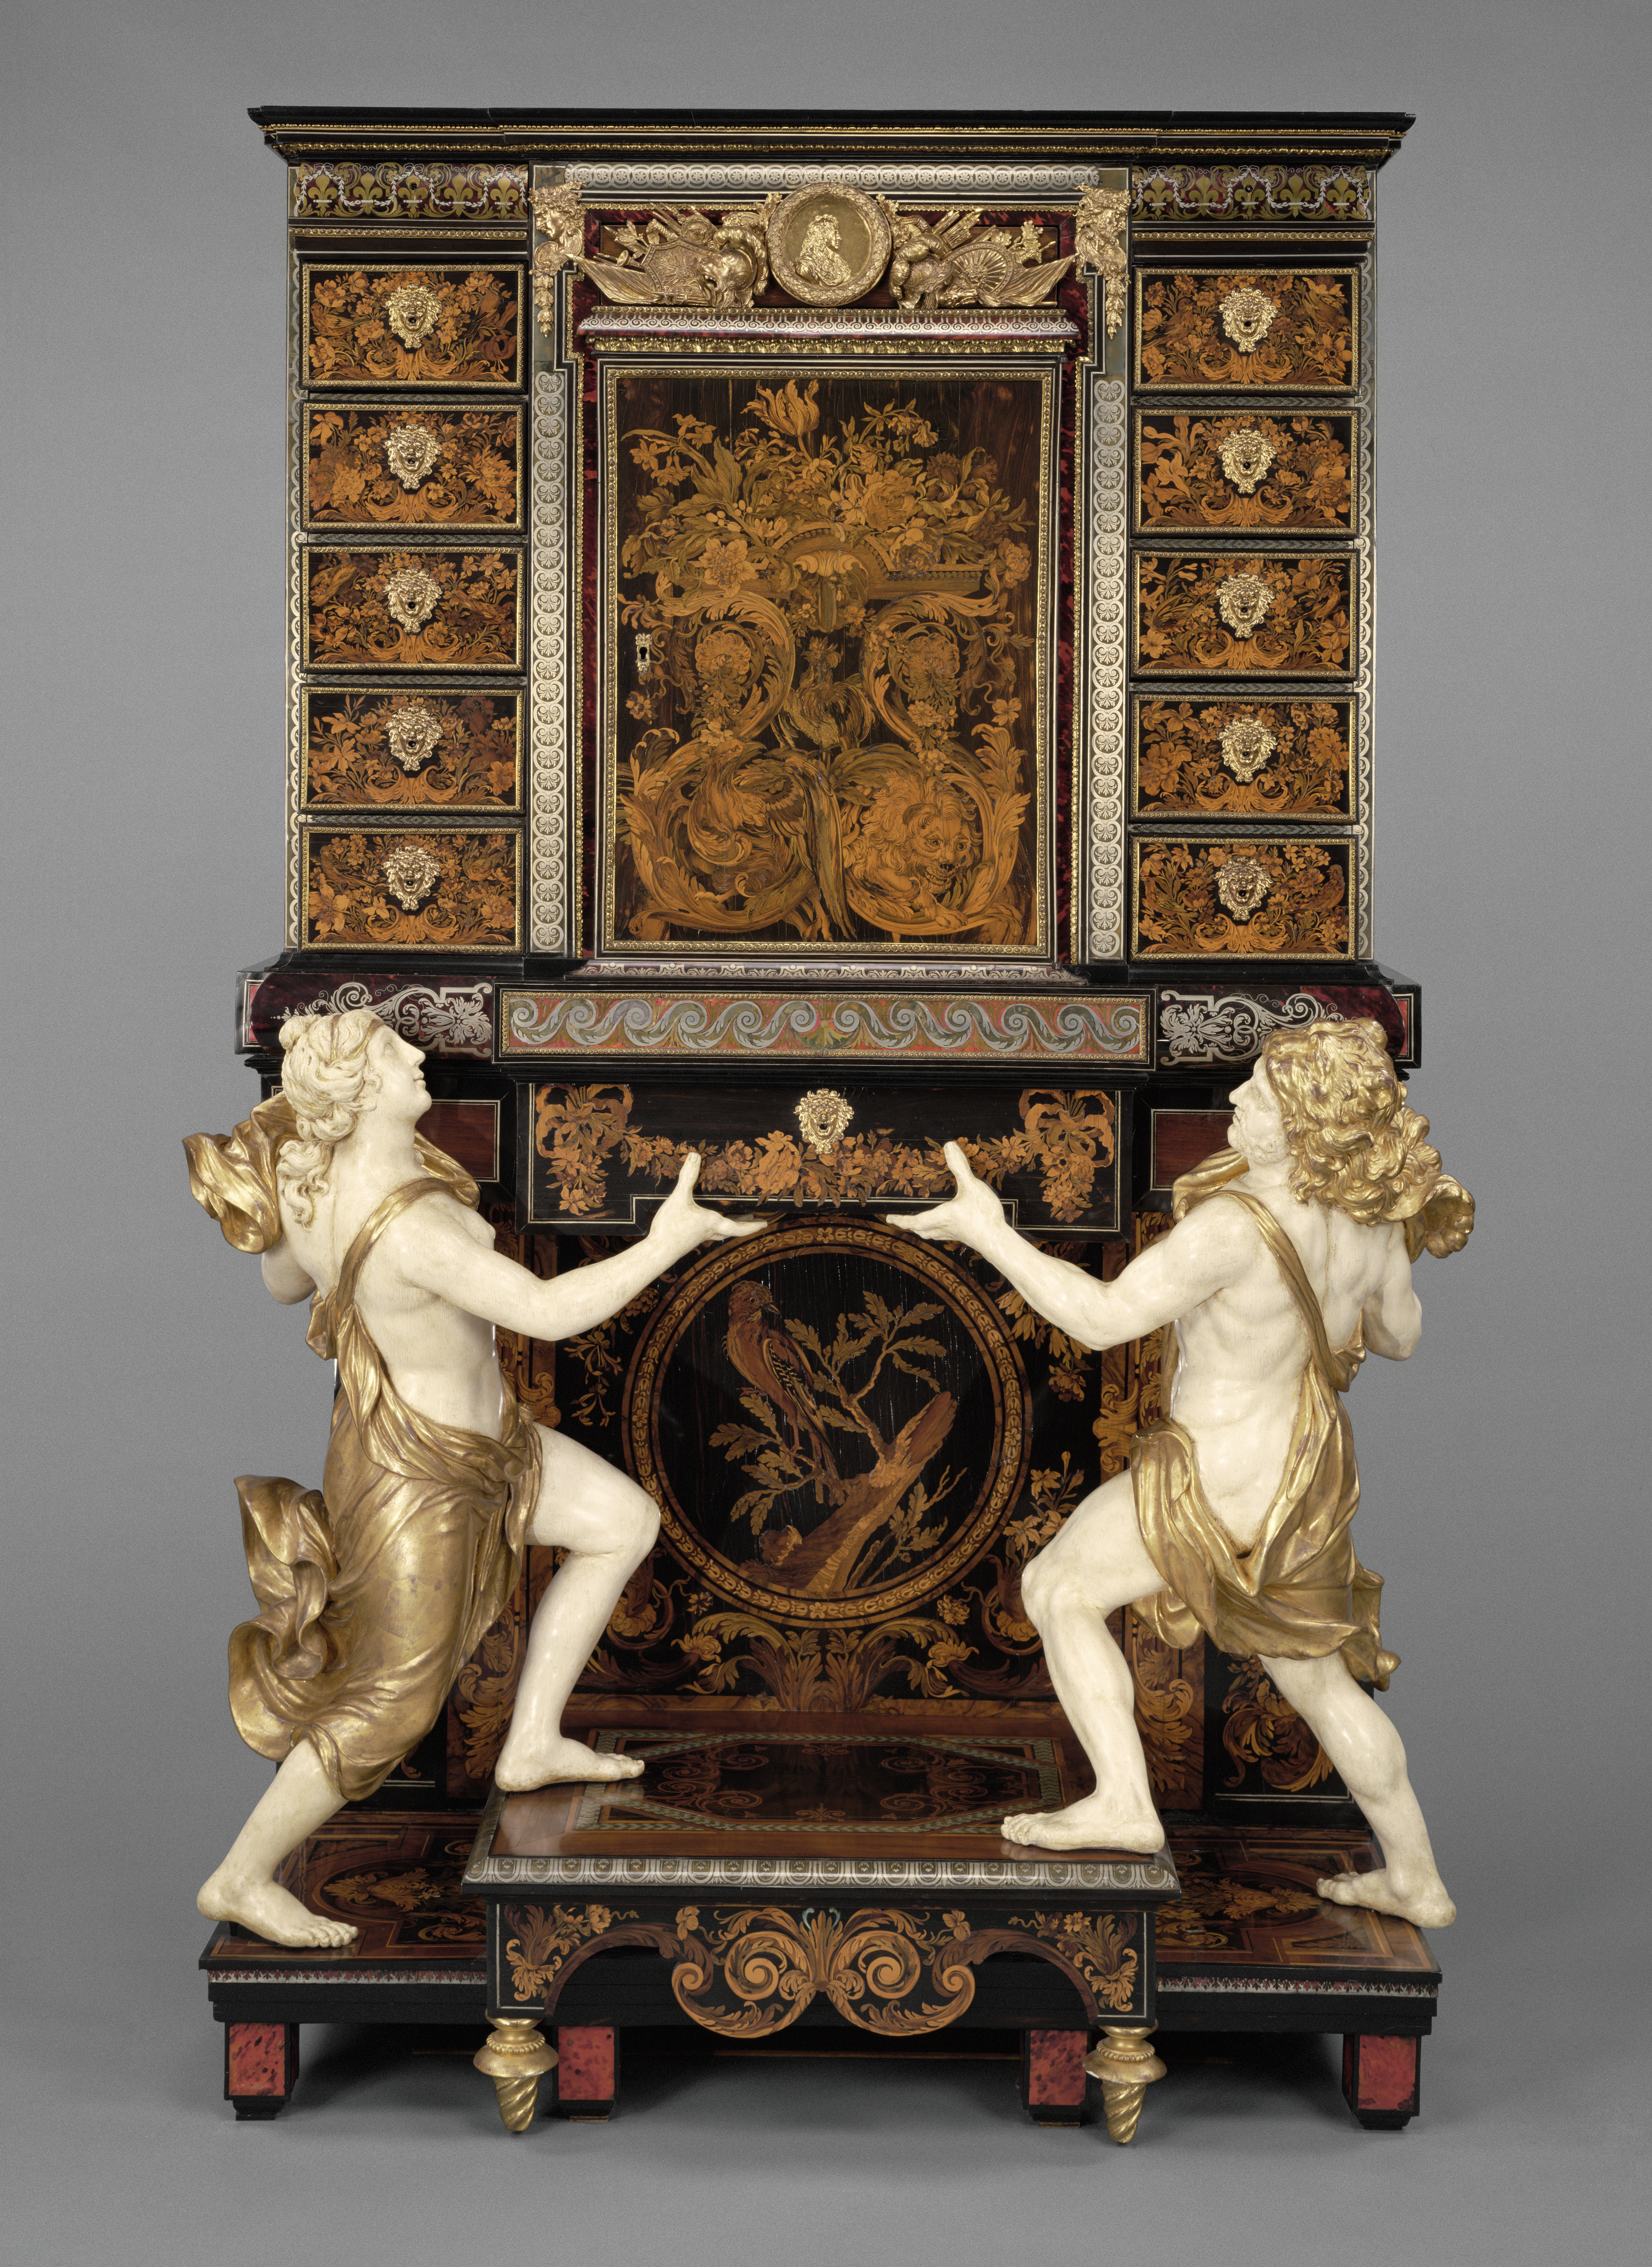 https://upload.wikimedia.org/wikipedia/commons/0/0a/A_cabinet-on-stand_attributed_to_Andr%C3%A9-Charles_Boulle_at_the_Getty_Museum.jpg